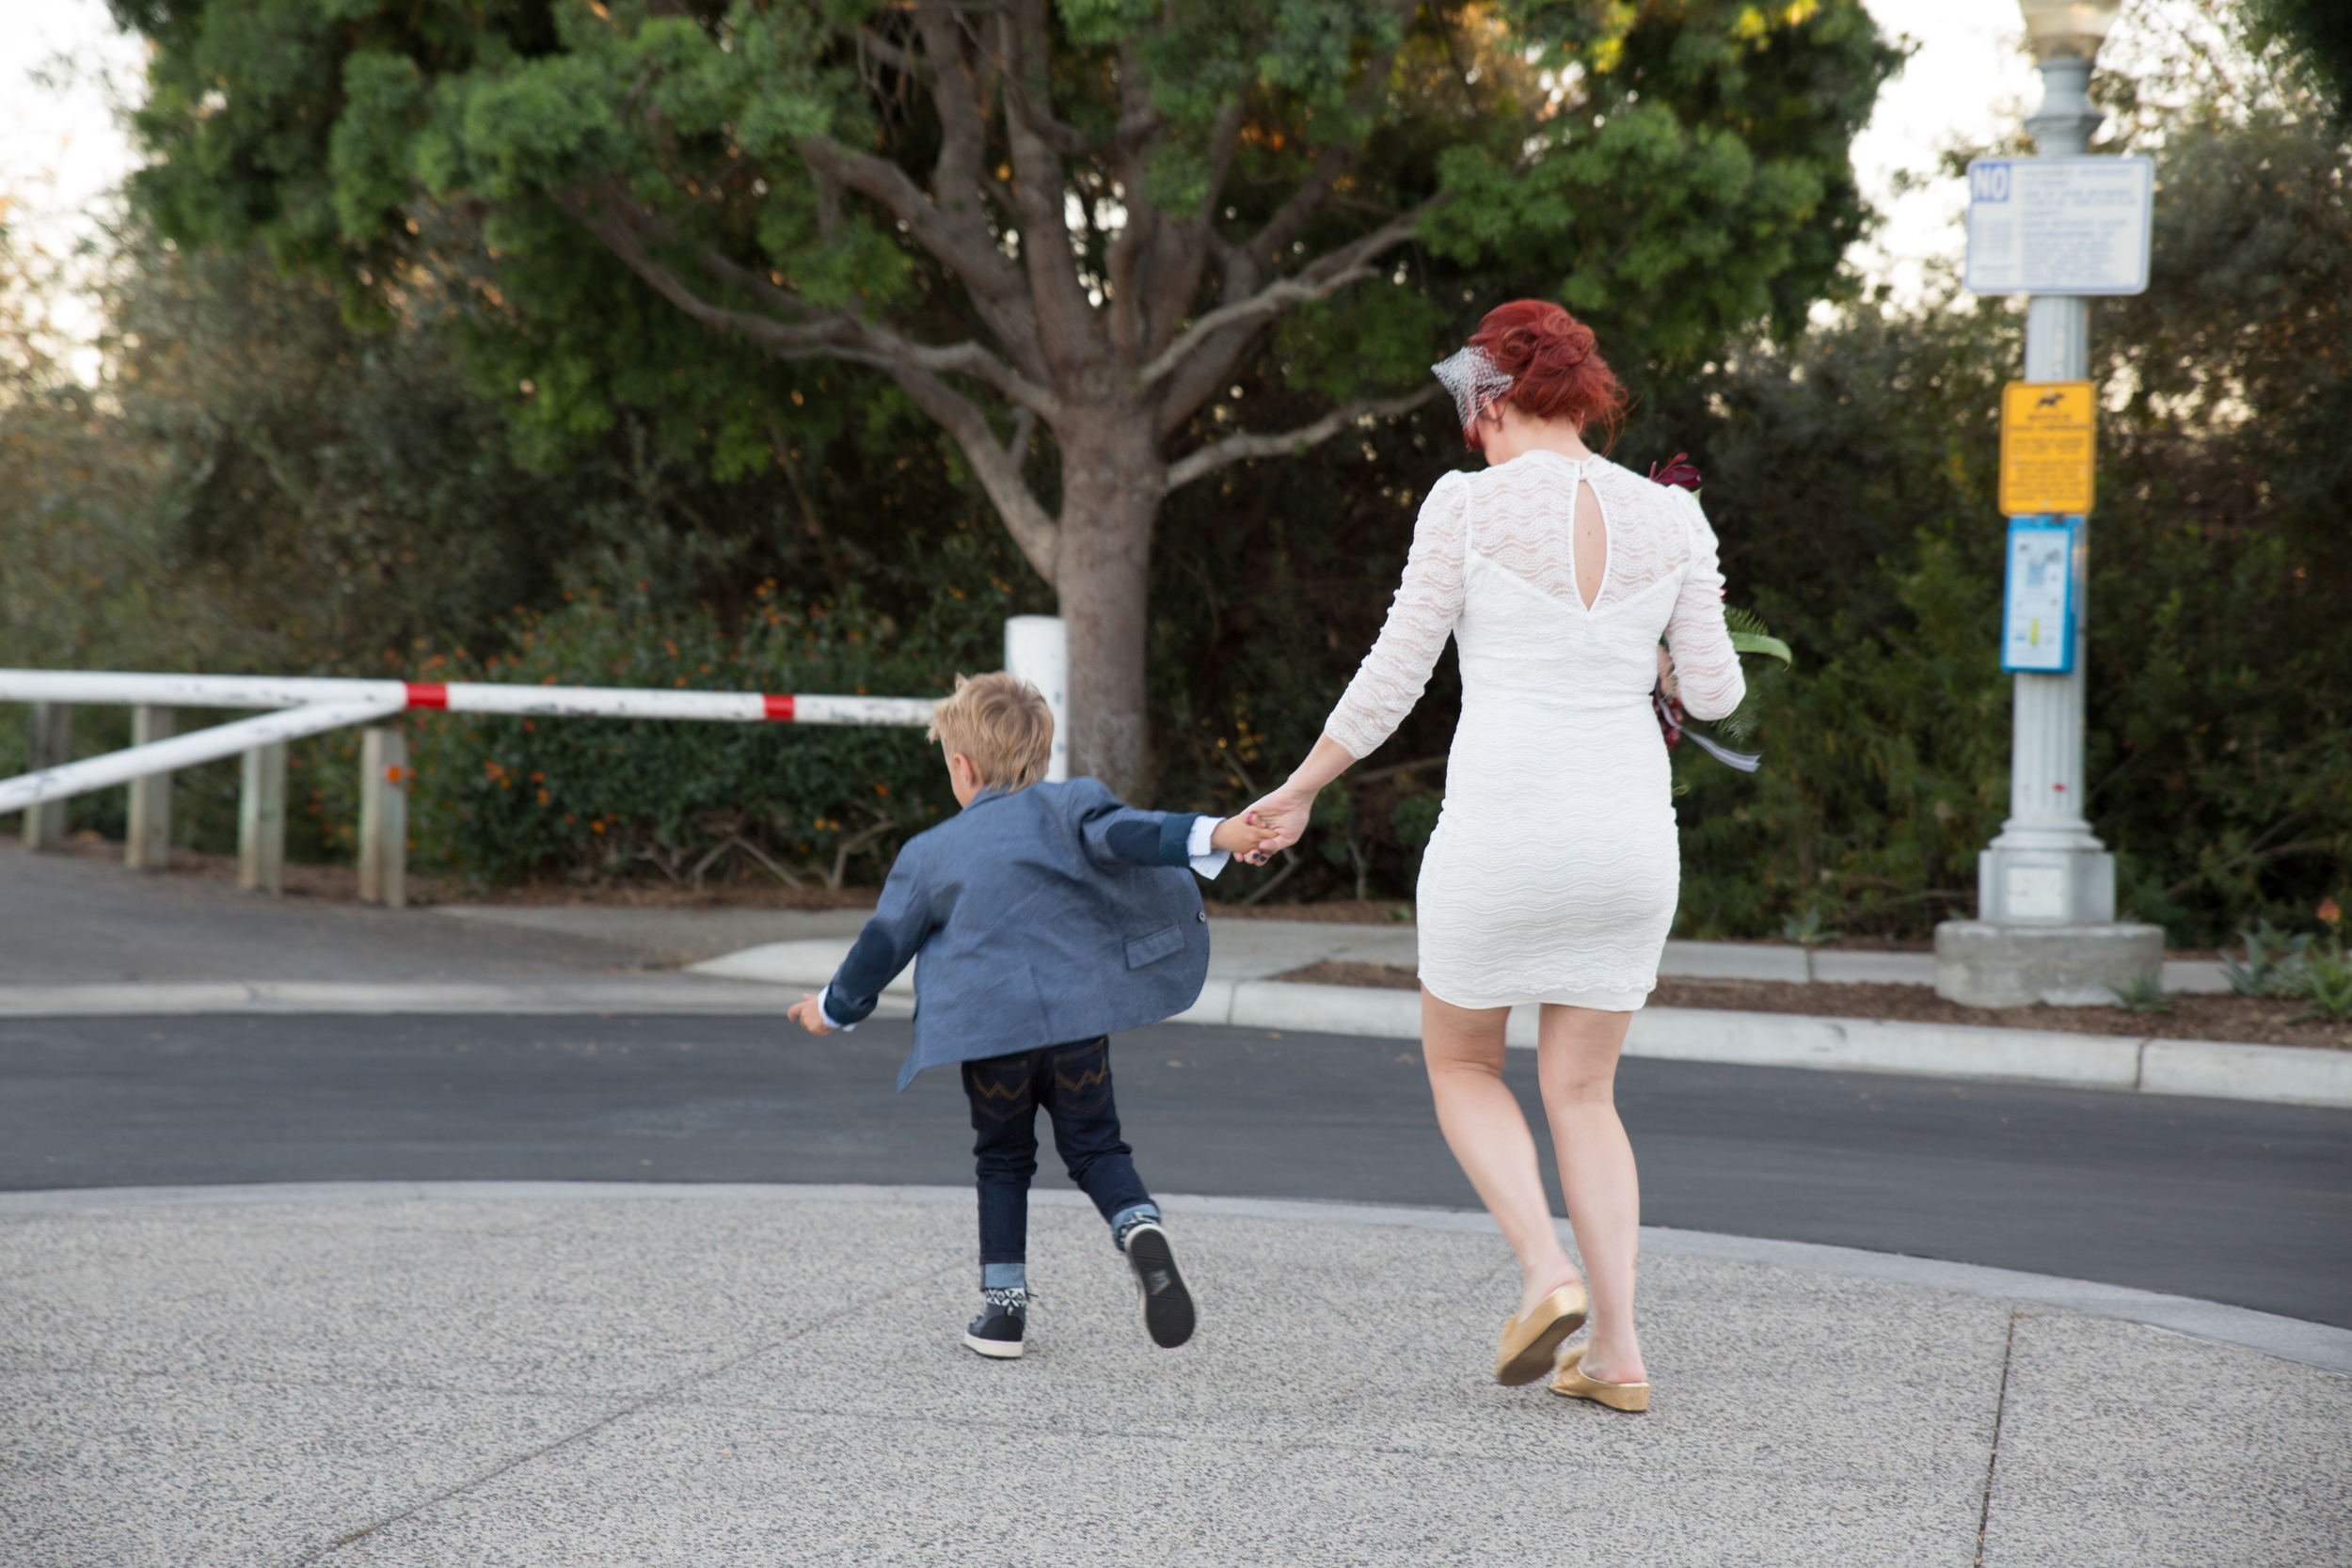 Their son Madden was too excited to walk to the wedding..